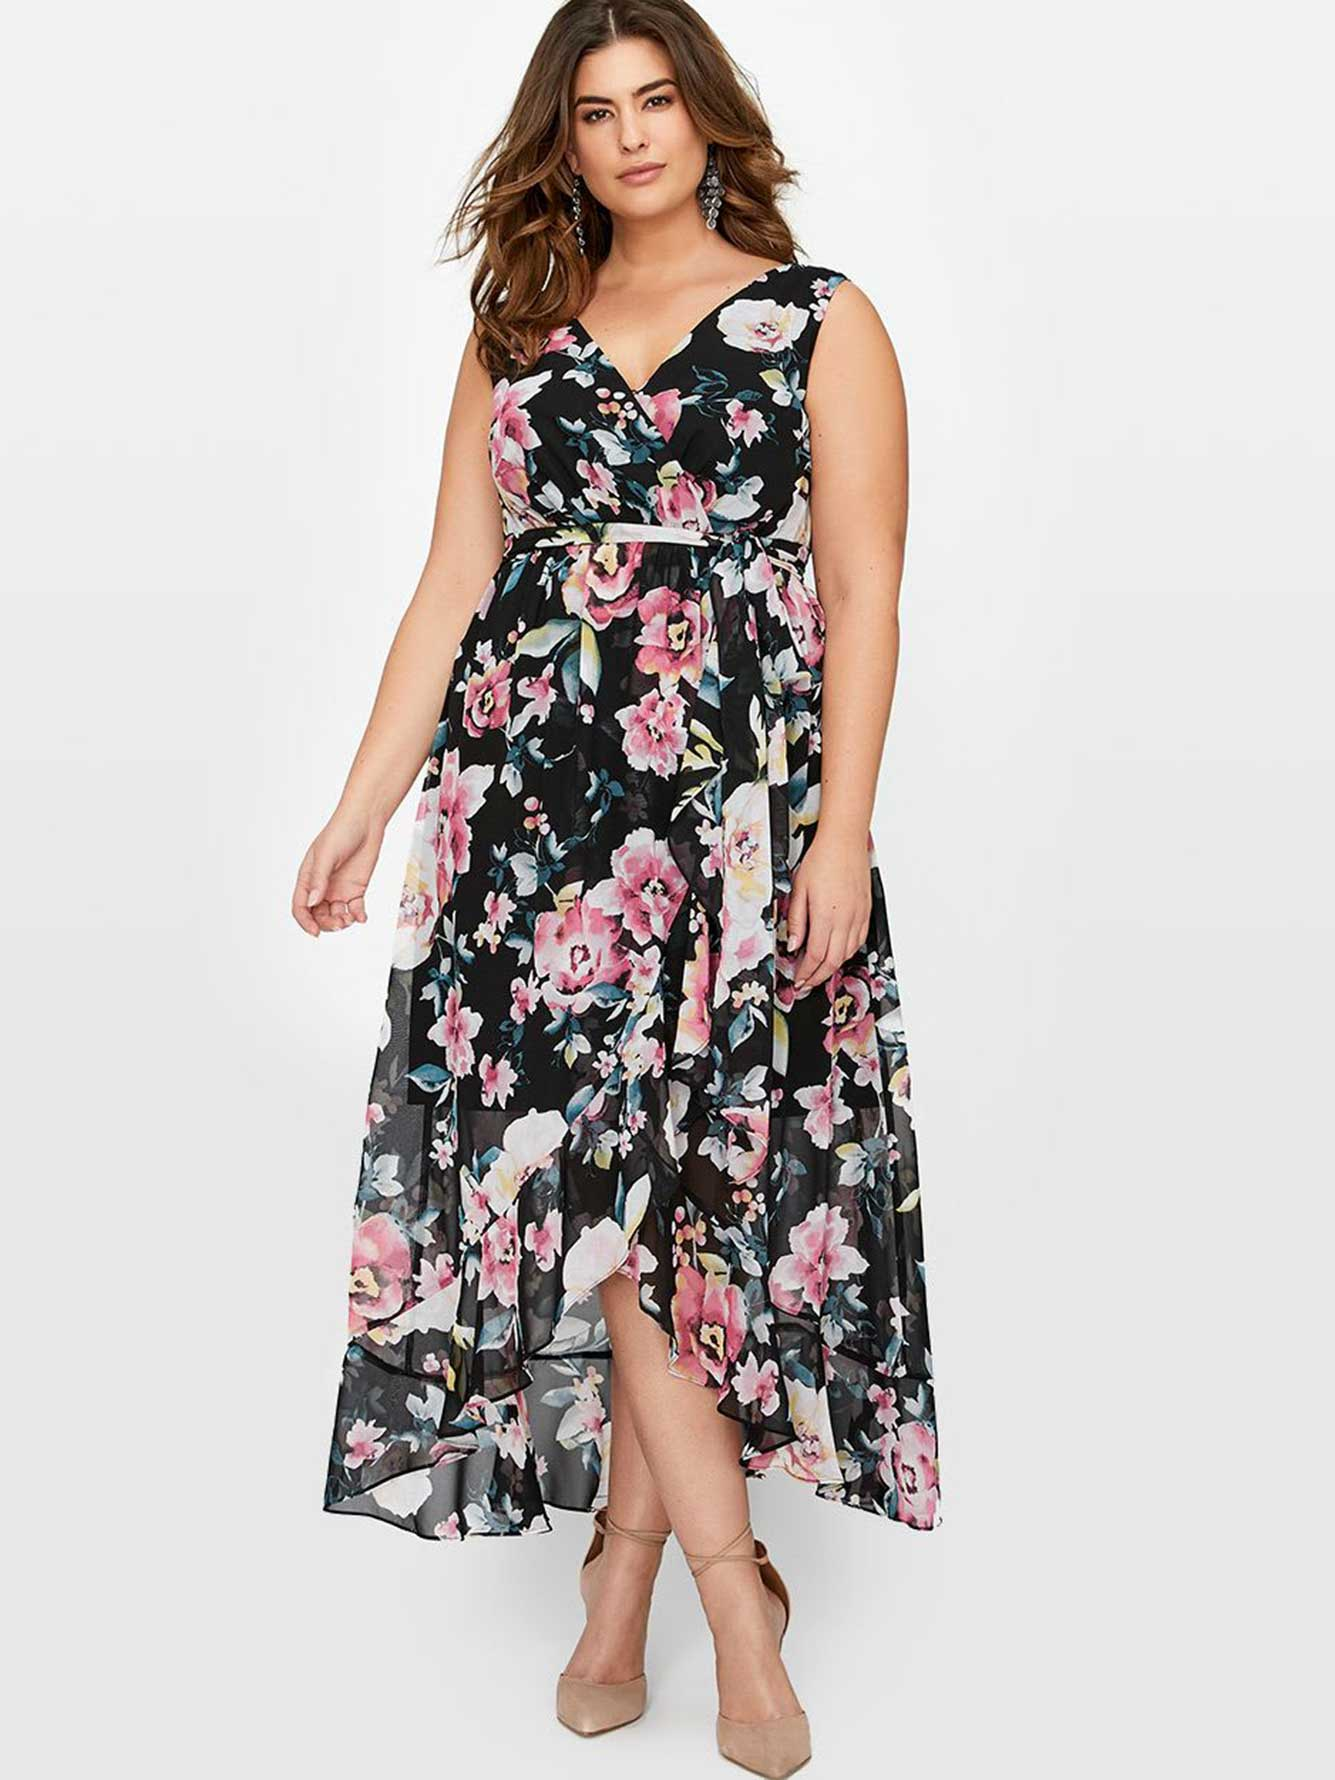 Find sleeveless maxi dress at ShopStyle. Shop the latest collection of sleeveless maxi dress from the most popular stores - all in one place.